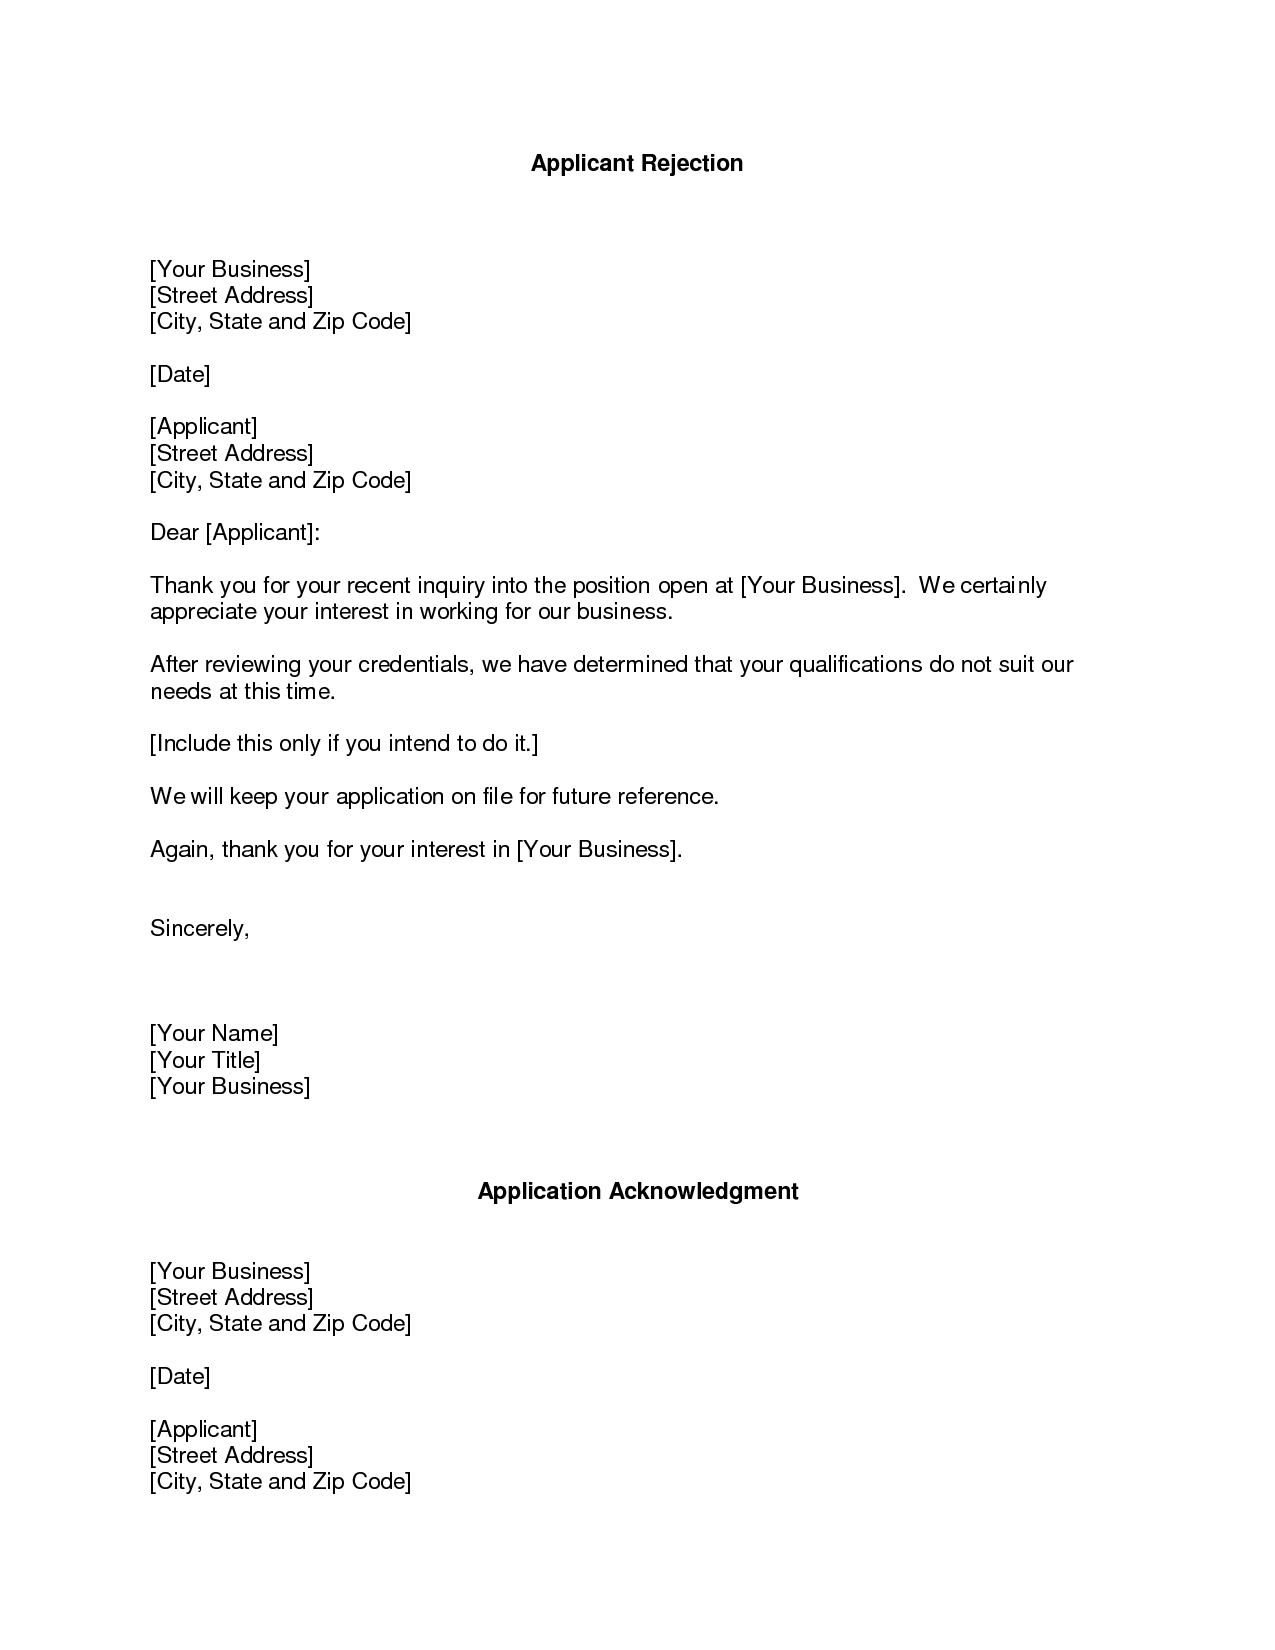 Business rejection letter the rejection letter format is similar business rejection letter the rejection letter format is similar to the business letter format and should be followed correctly thecheapjerseys